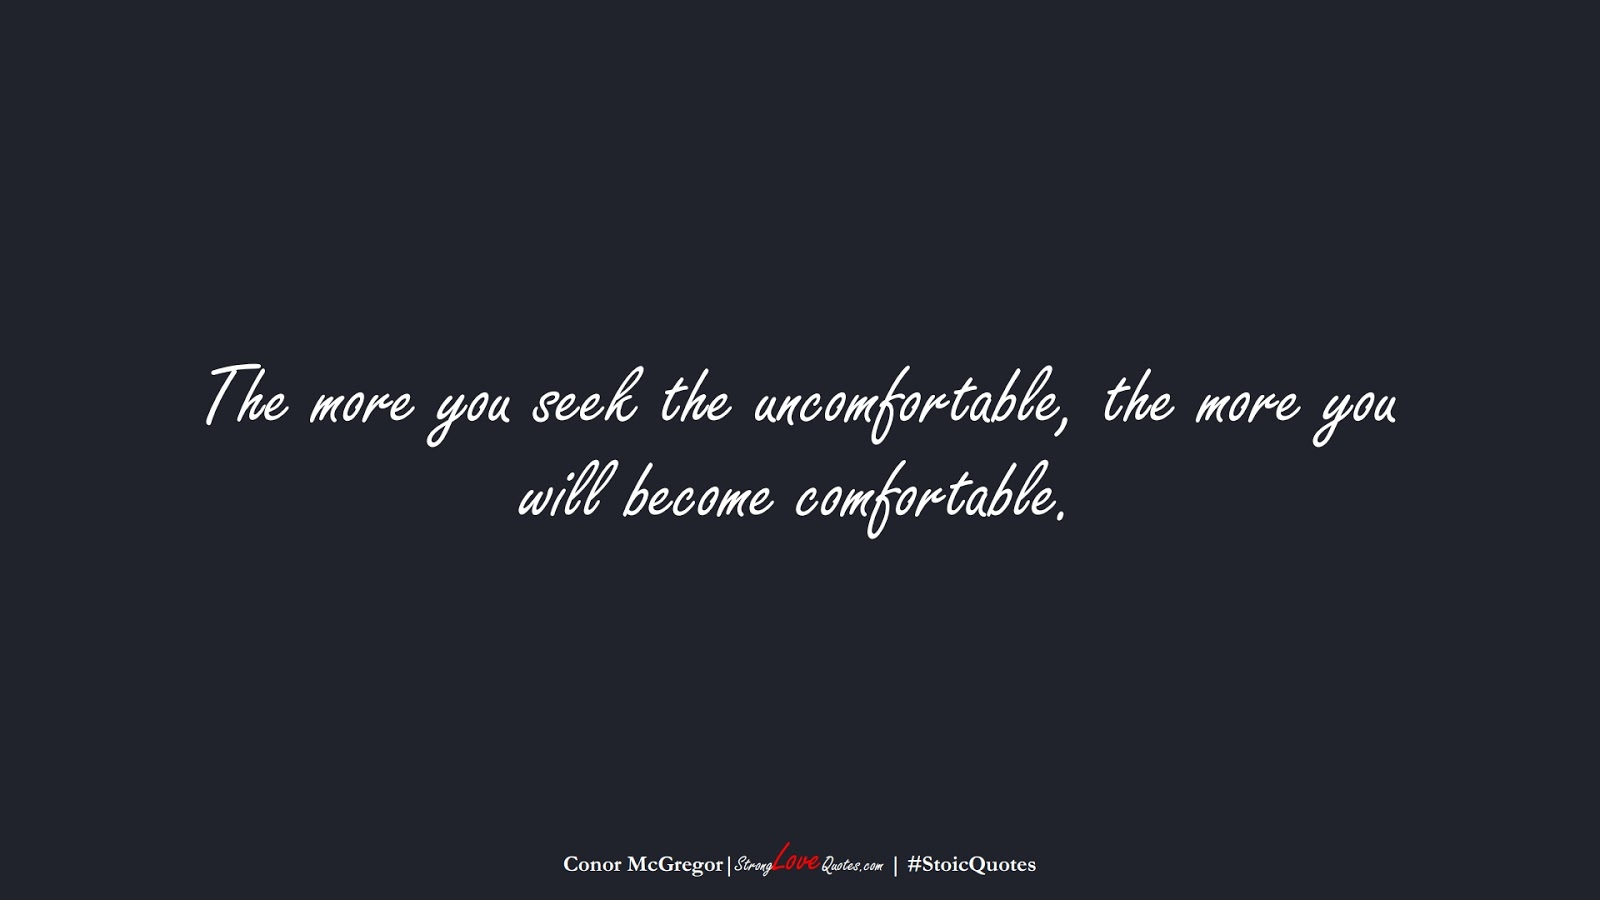 The more you seek the uncomfortable, the more you will become comfortable. (Conor McGregor);  #StoicQuotes